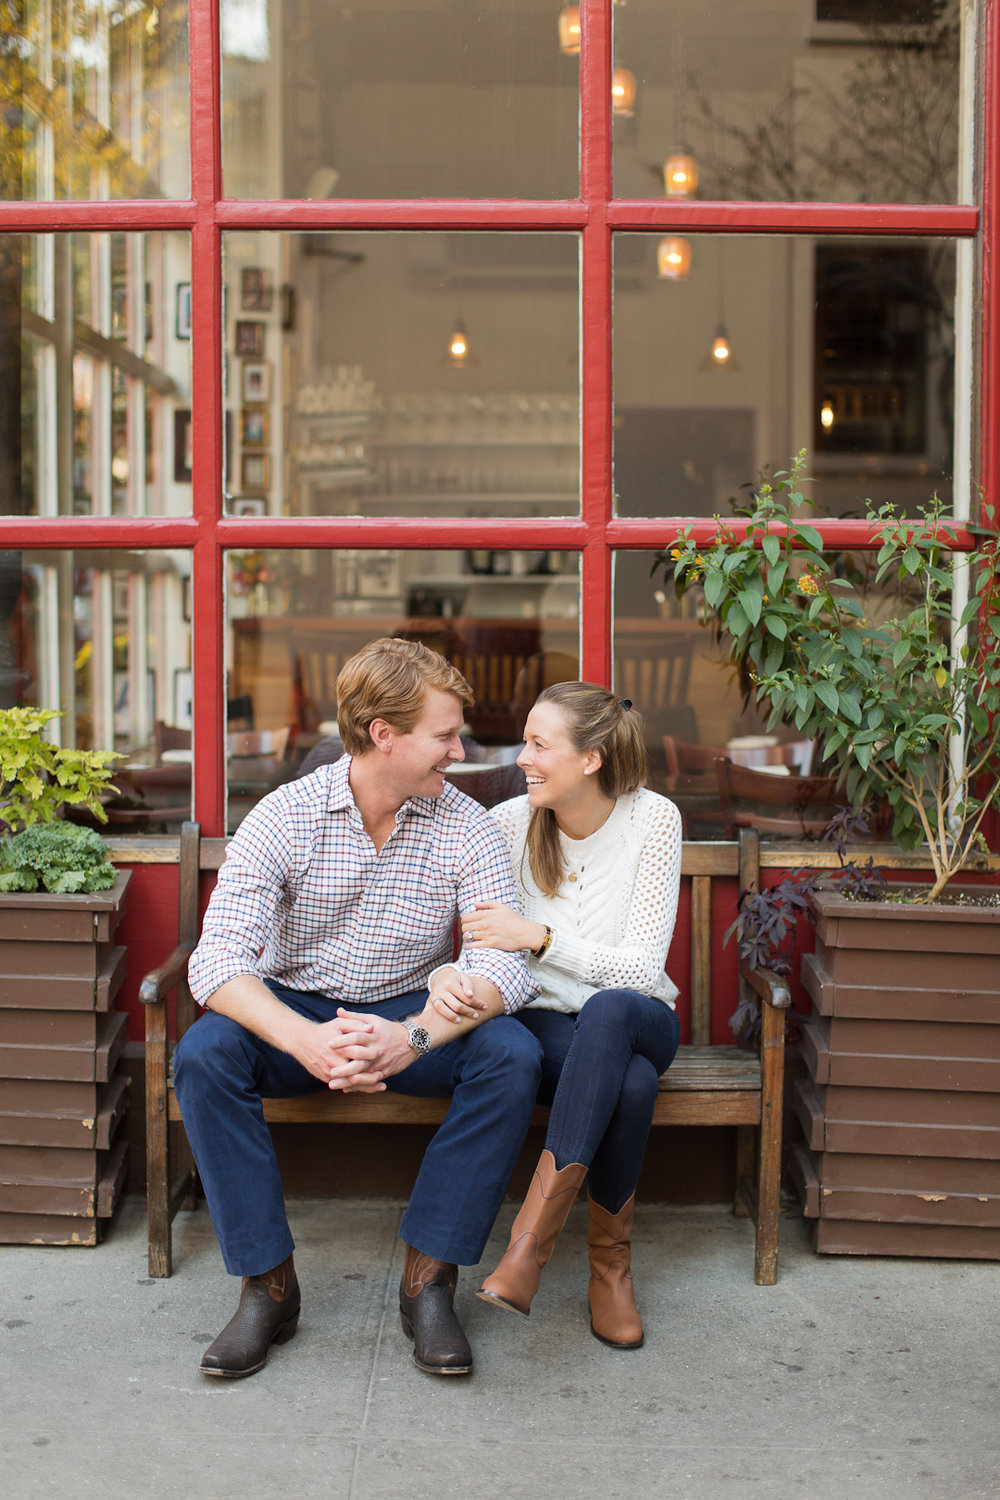 Melissa Kruse Photography - Megan & Tyler West Village Engagement Photos-44.jpg